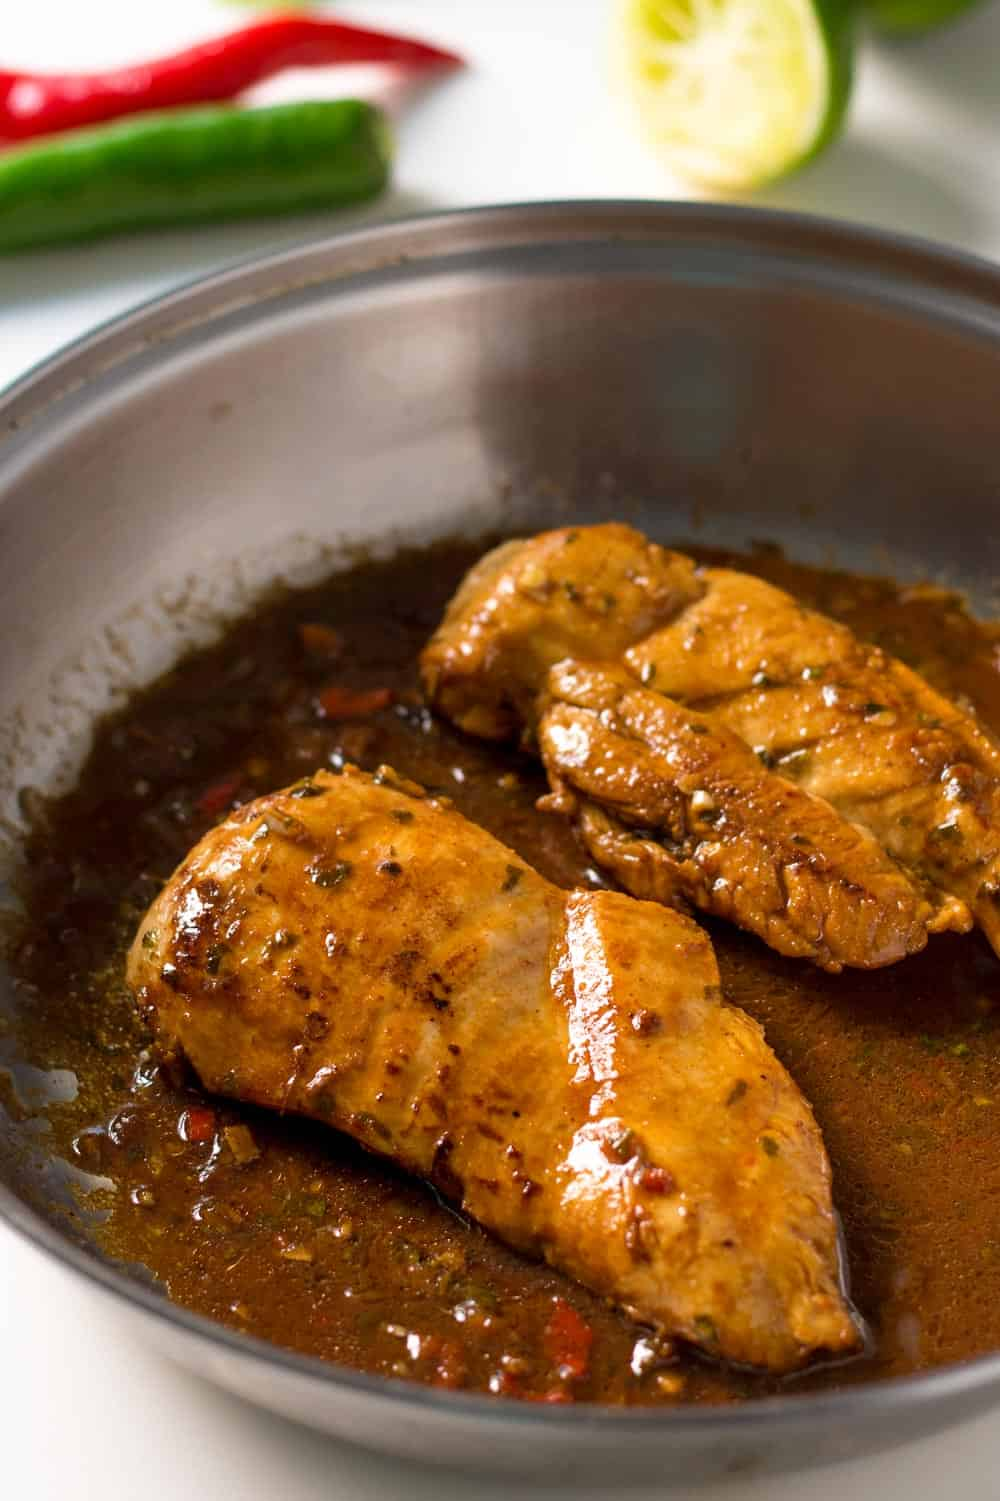 Marinated Chili Lime Chicken Breasts